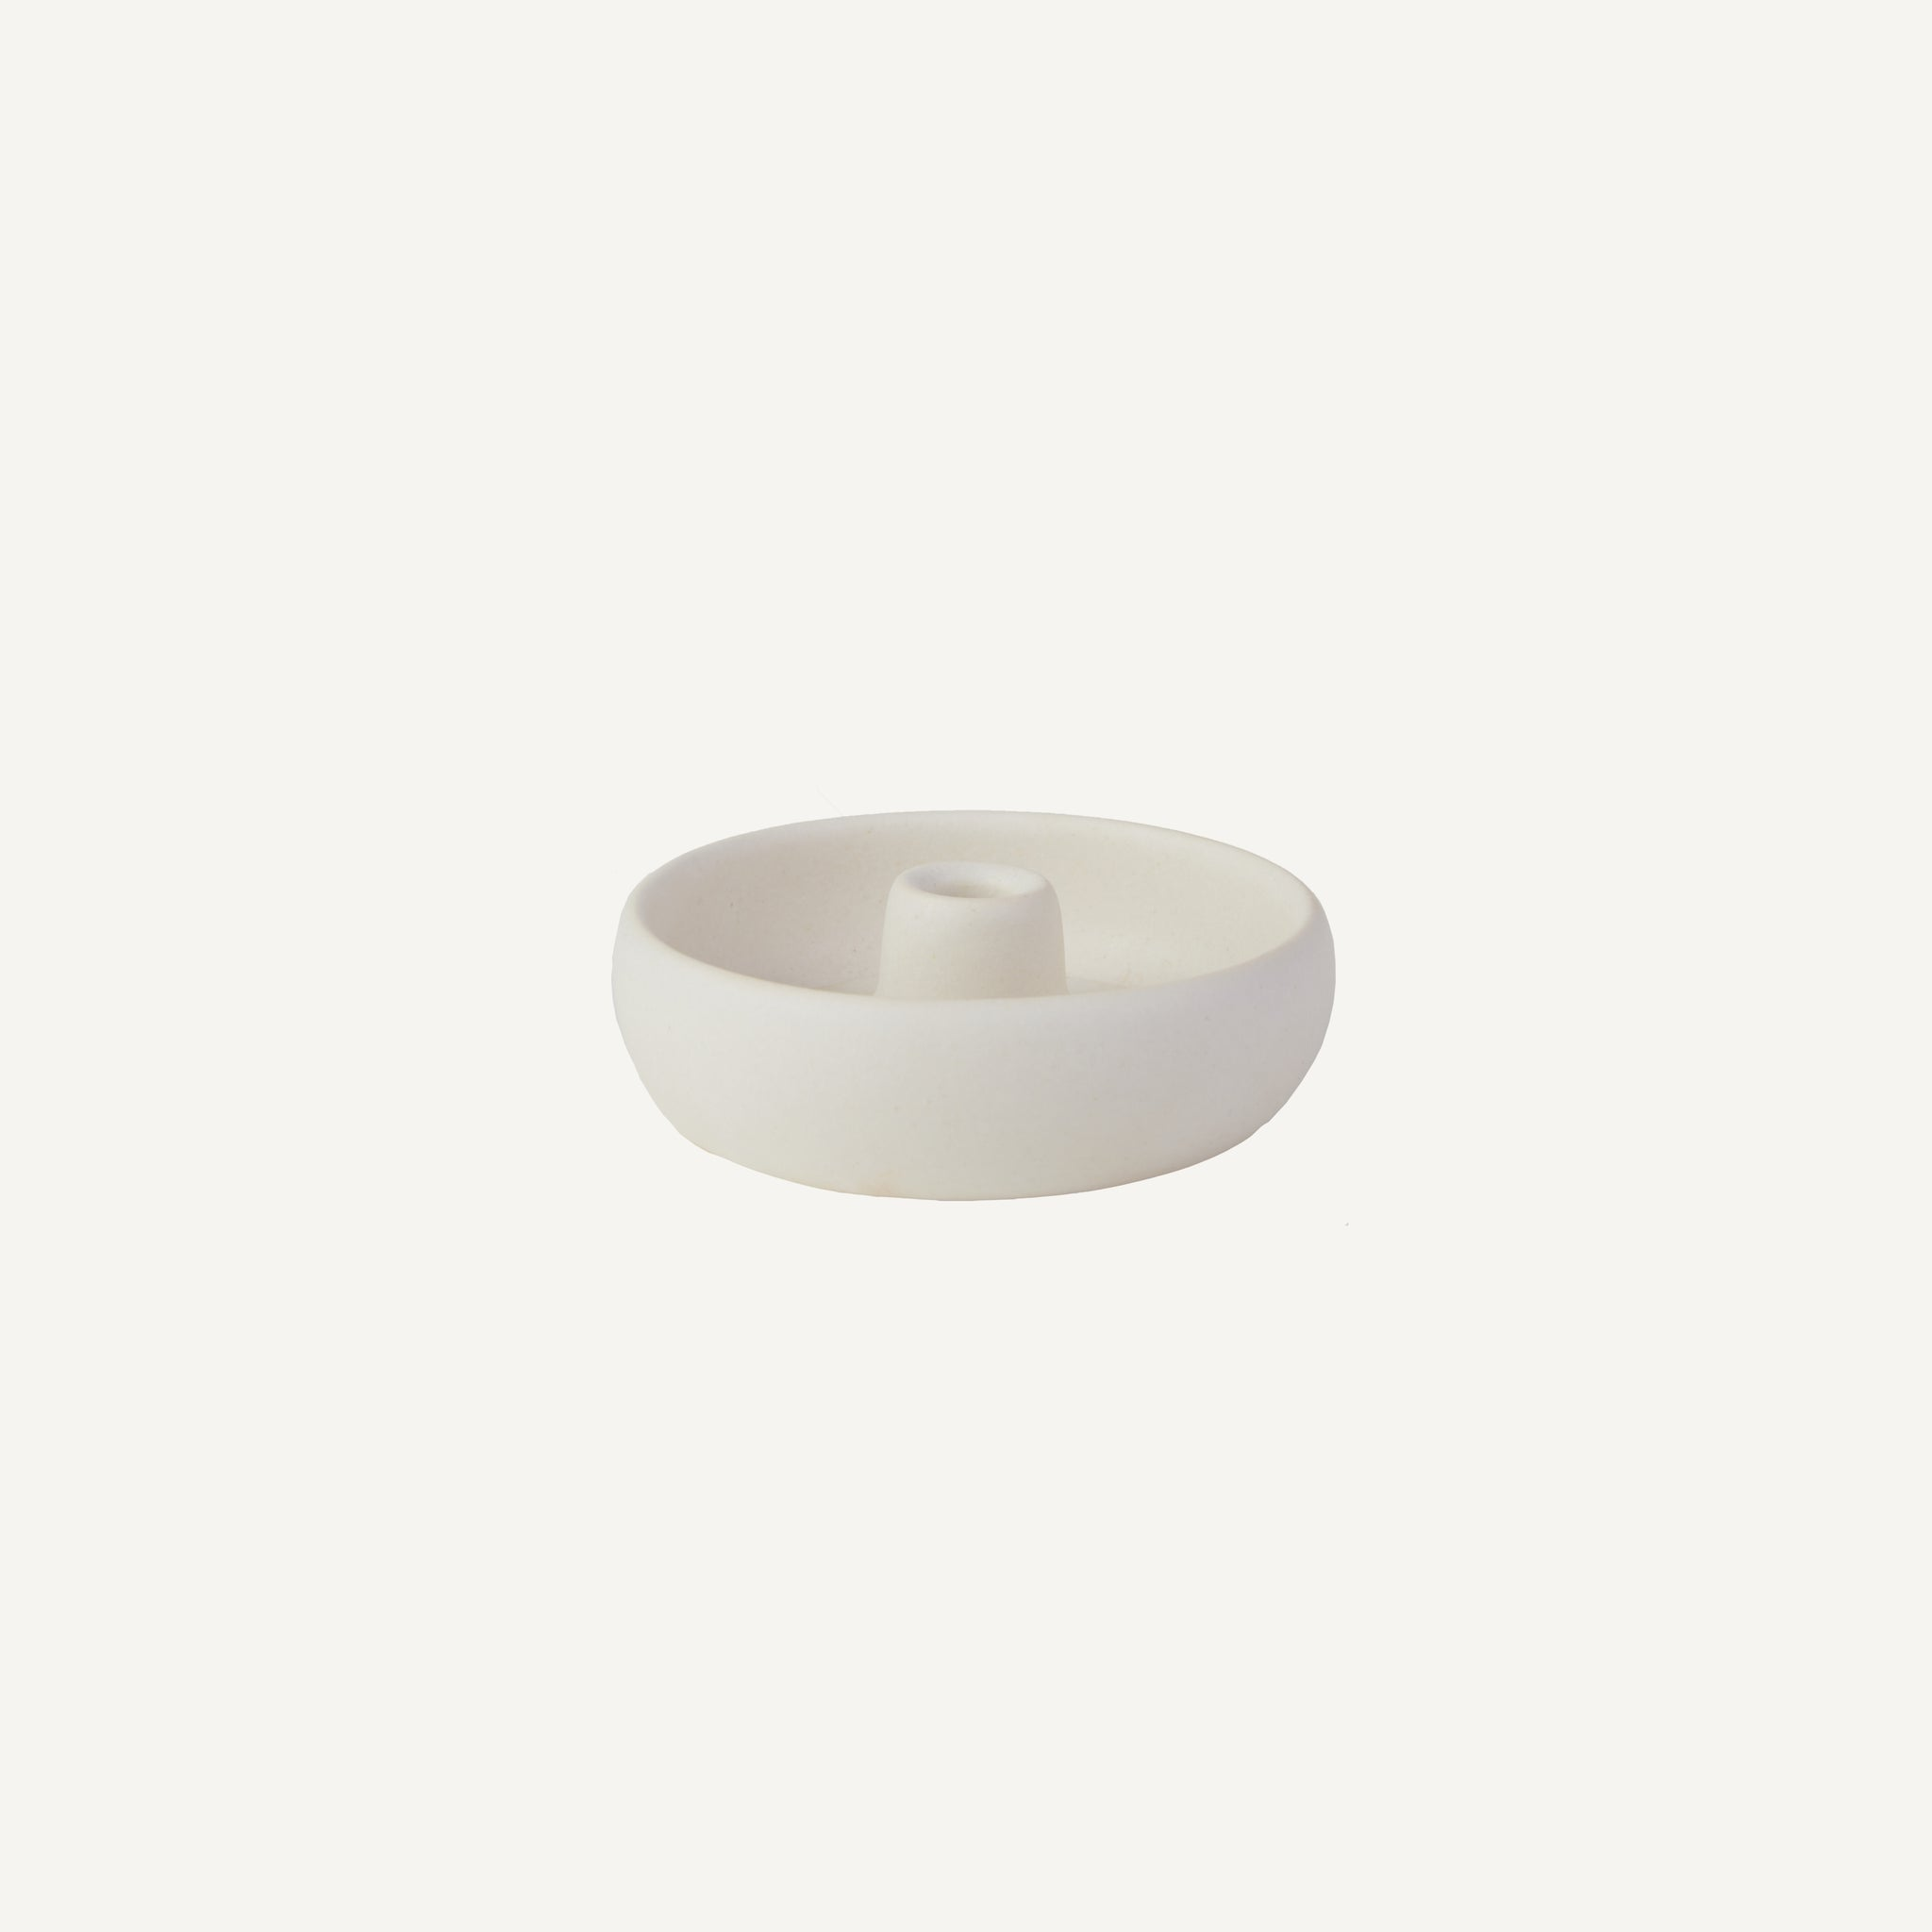 GRANDMONT STREET + PLAIN GOODS PRAYER CANDLE HOLDER